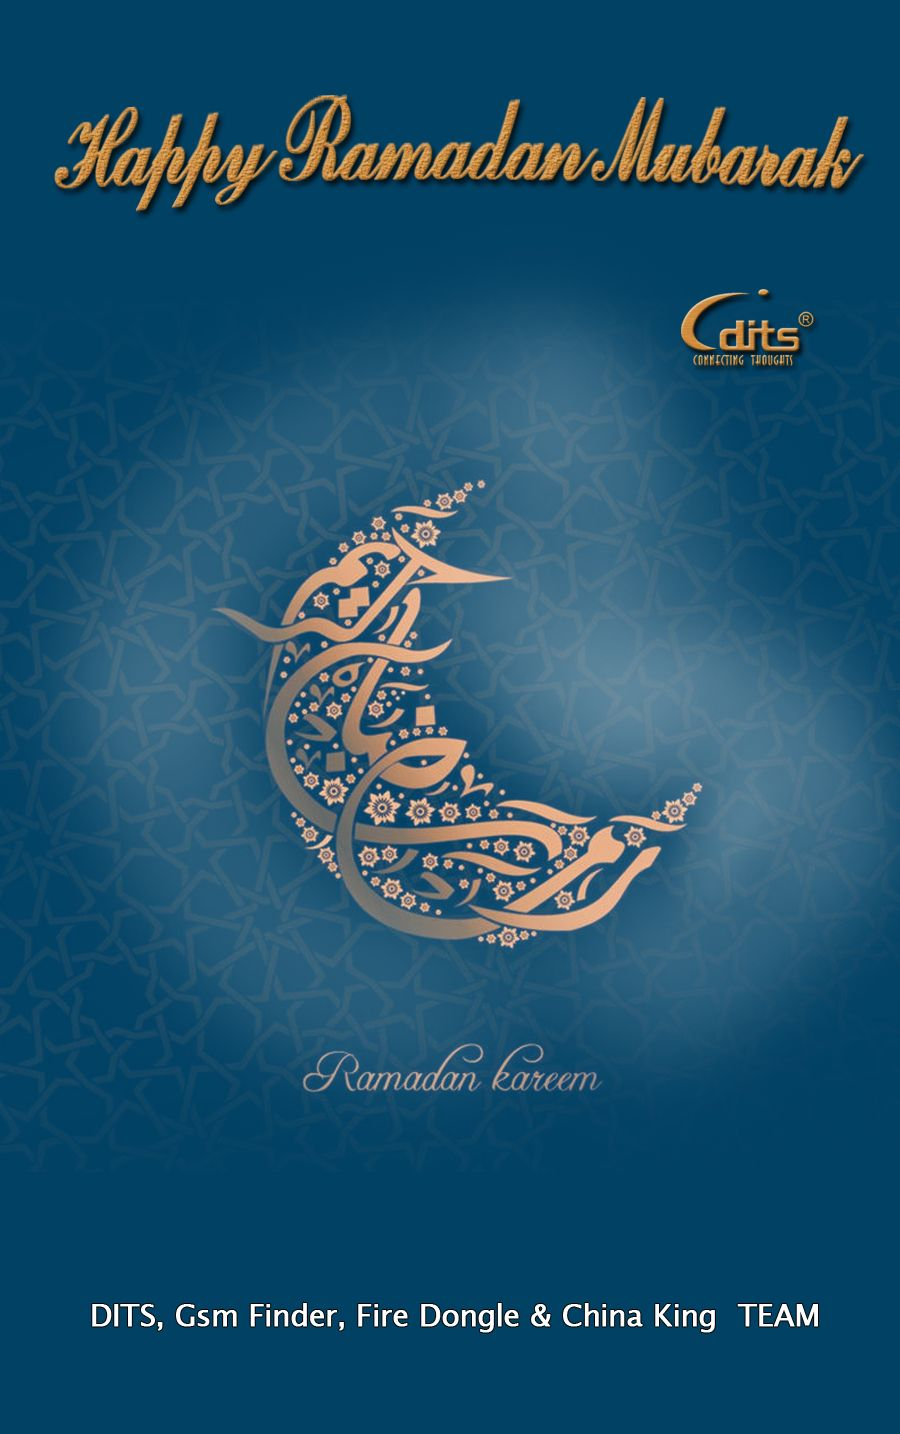 China King Wish To All Our Muslim Freind Ramadan Mubarak Ramadan Mubarak Ramadan Wish